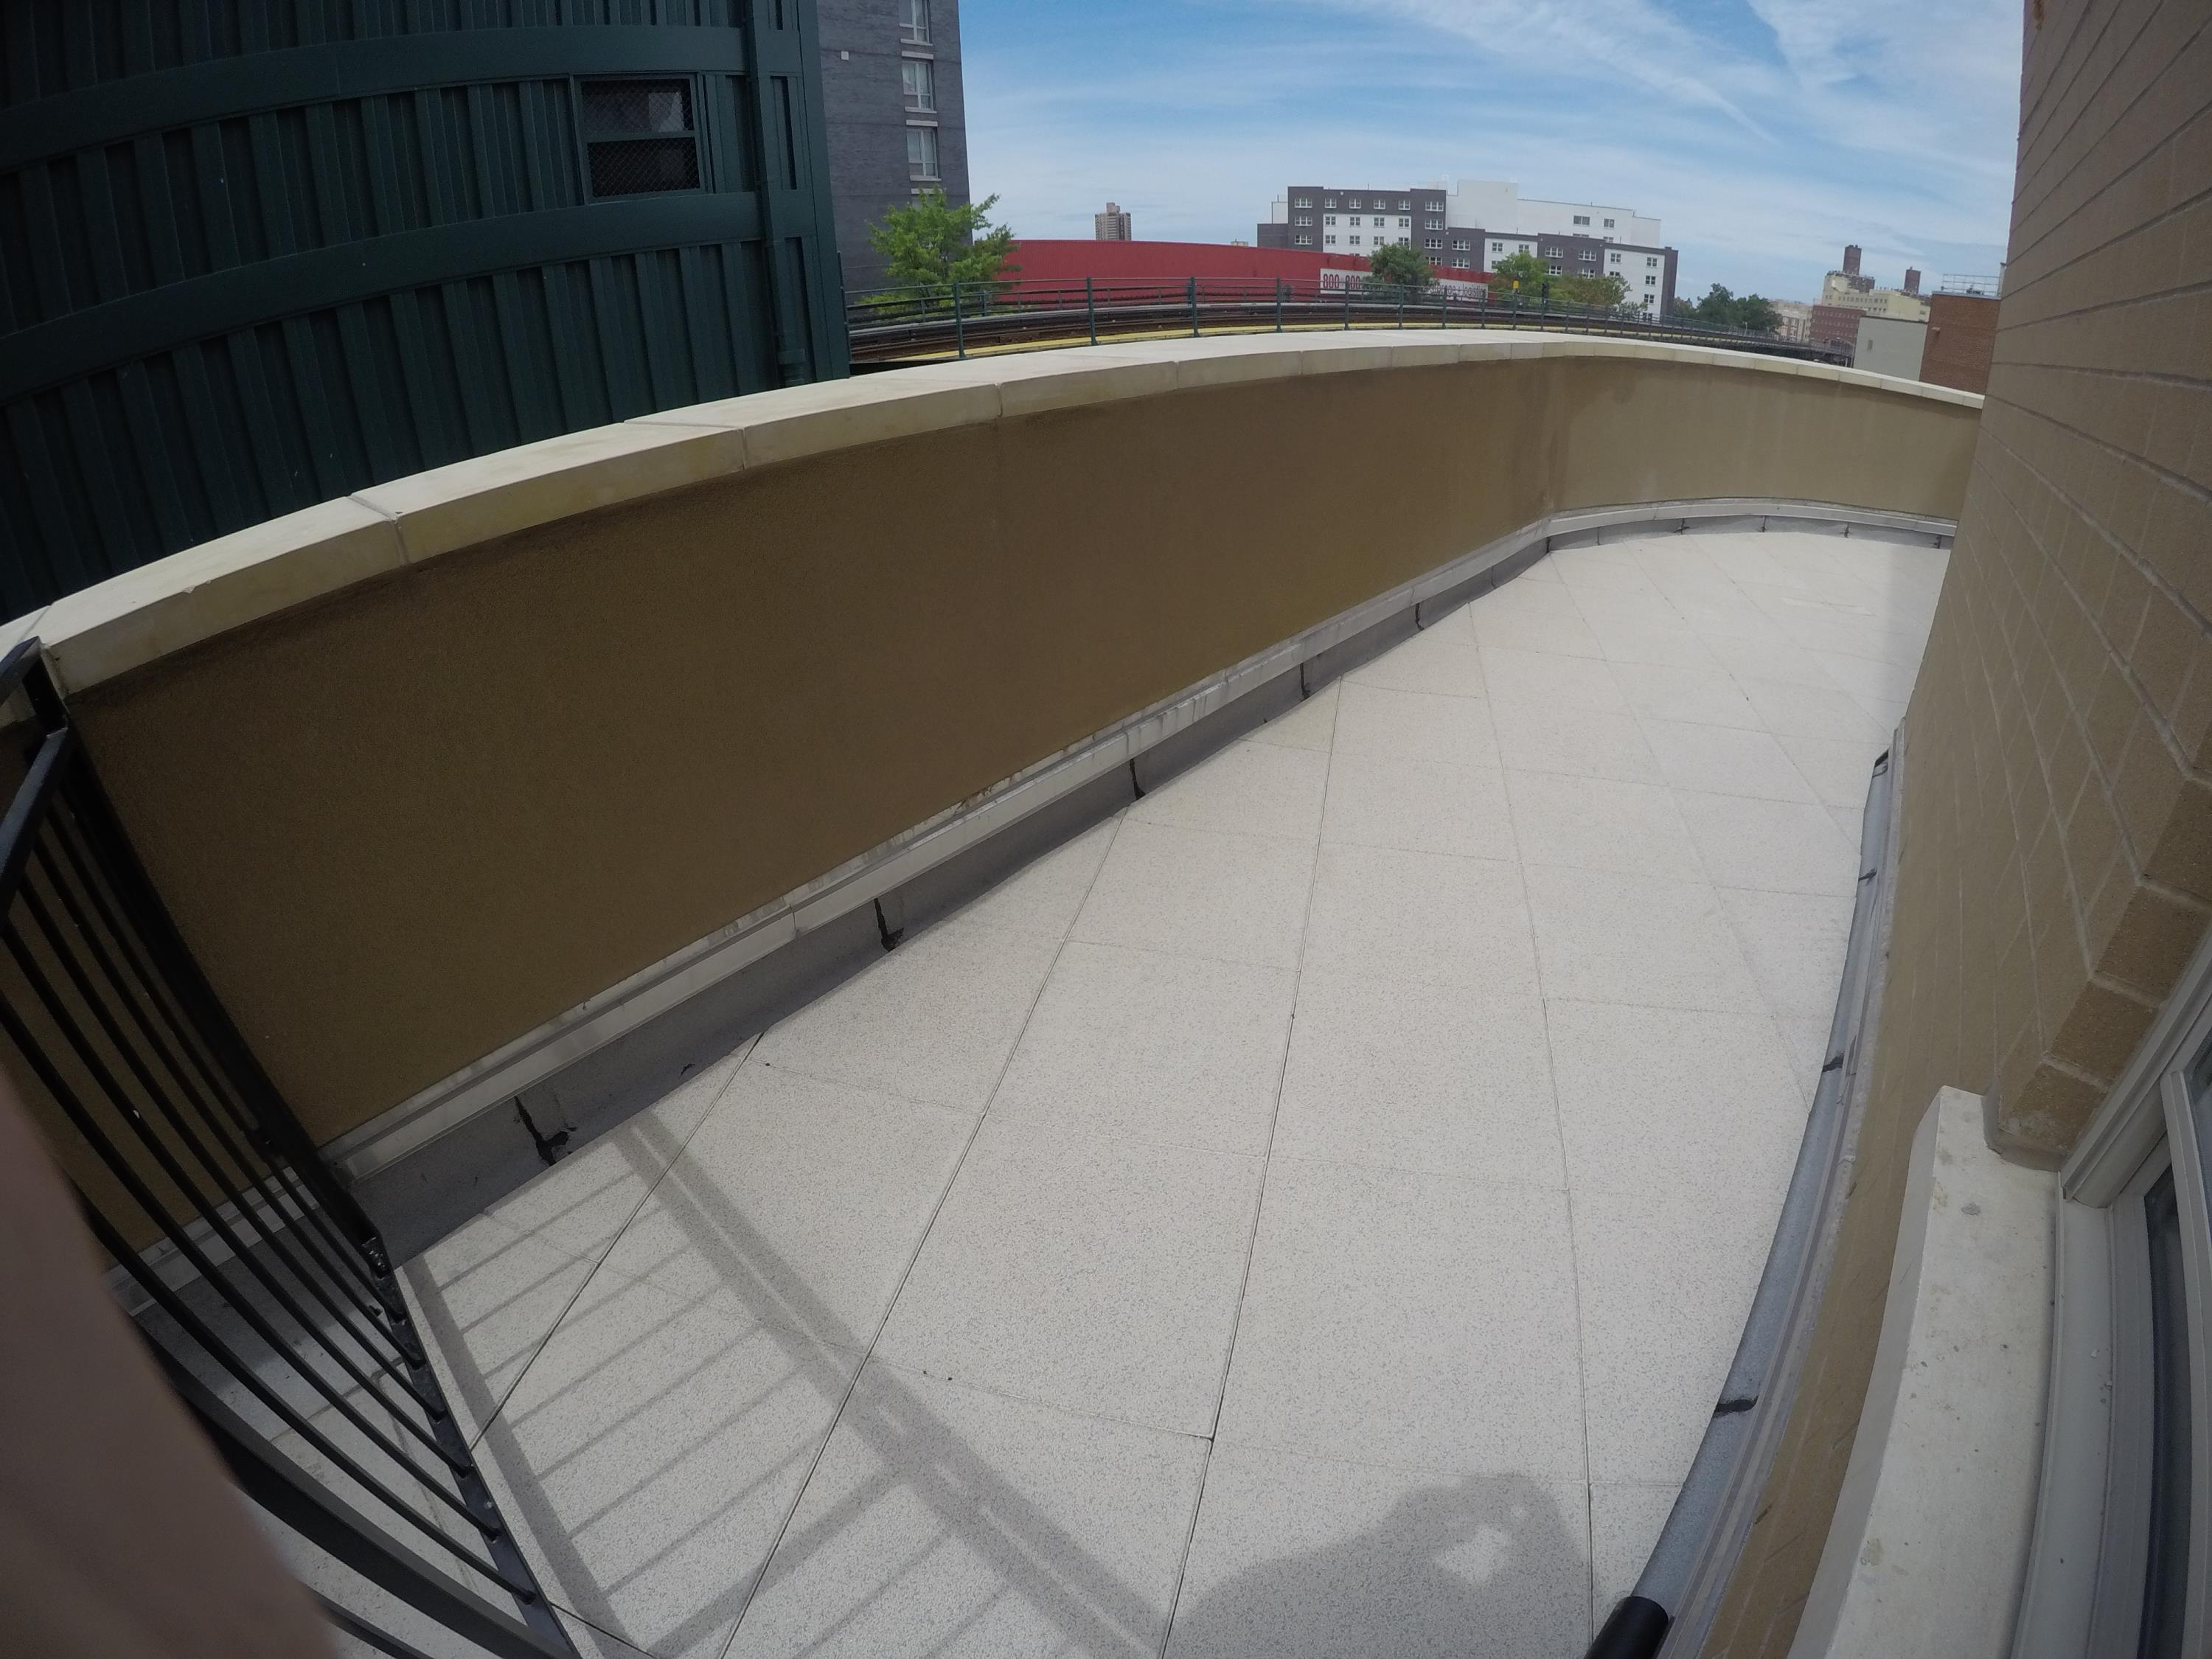 Rooftop Walkway for Tenant Access to Common Area